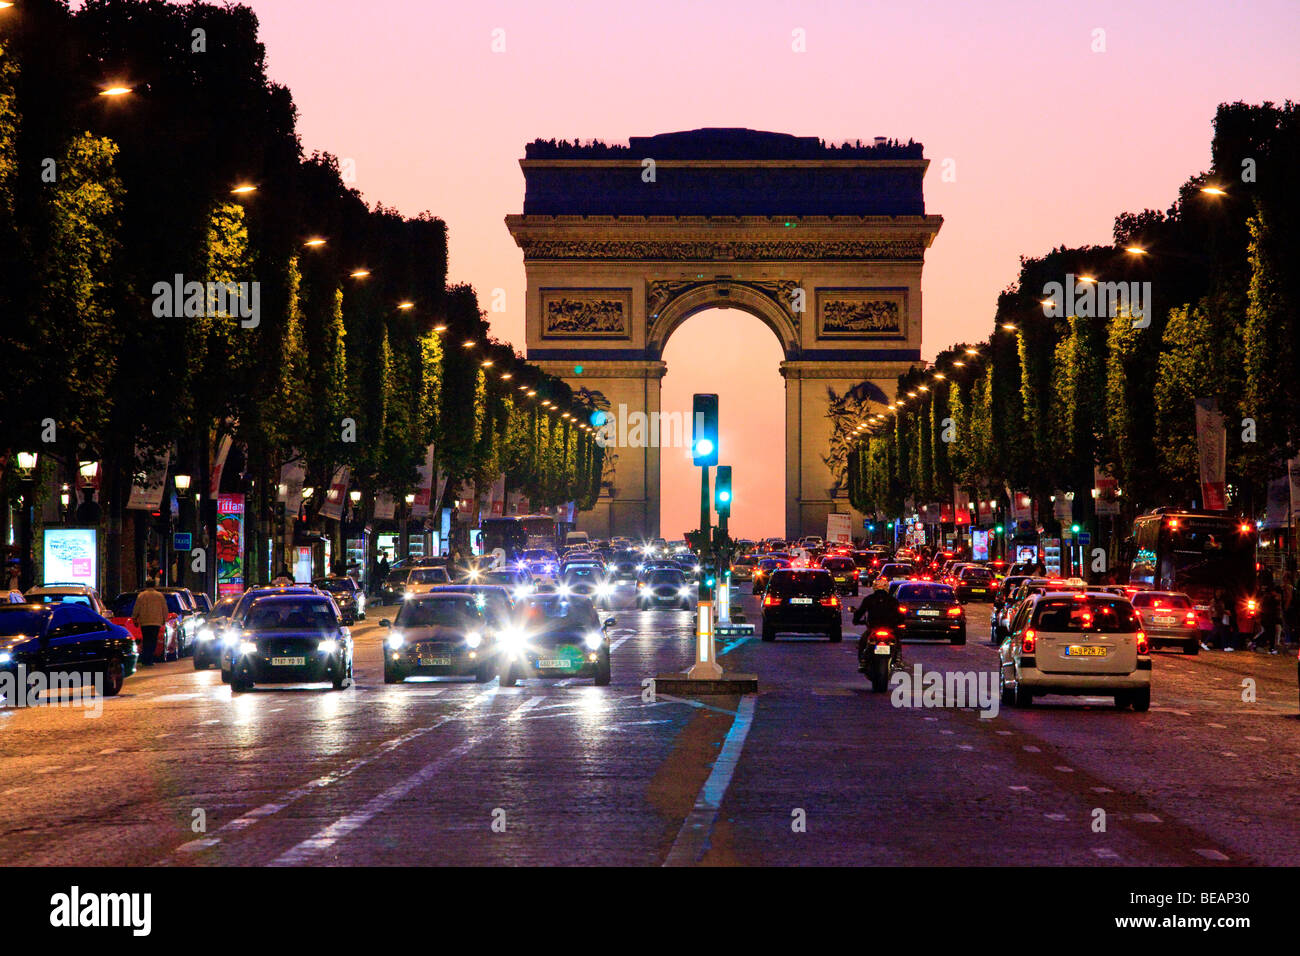 arc de triomphe and the champs elysees at night in paris stock photo 26052404 alamy. Black Bedroom Furniture Sets. Home Design Ideas